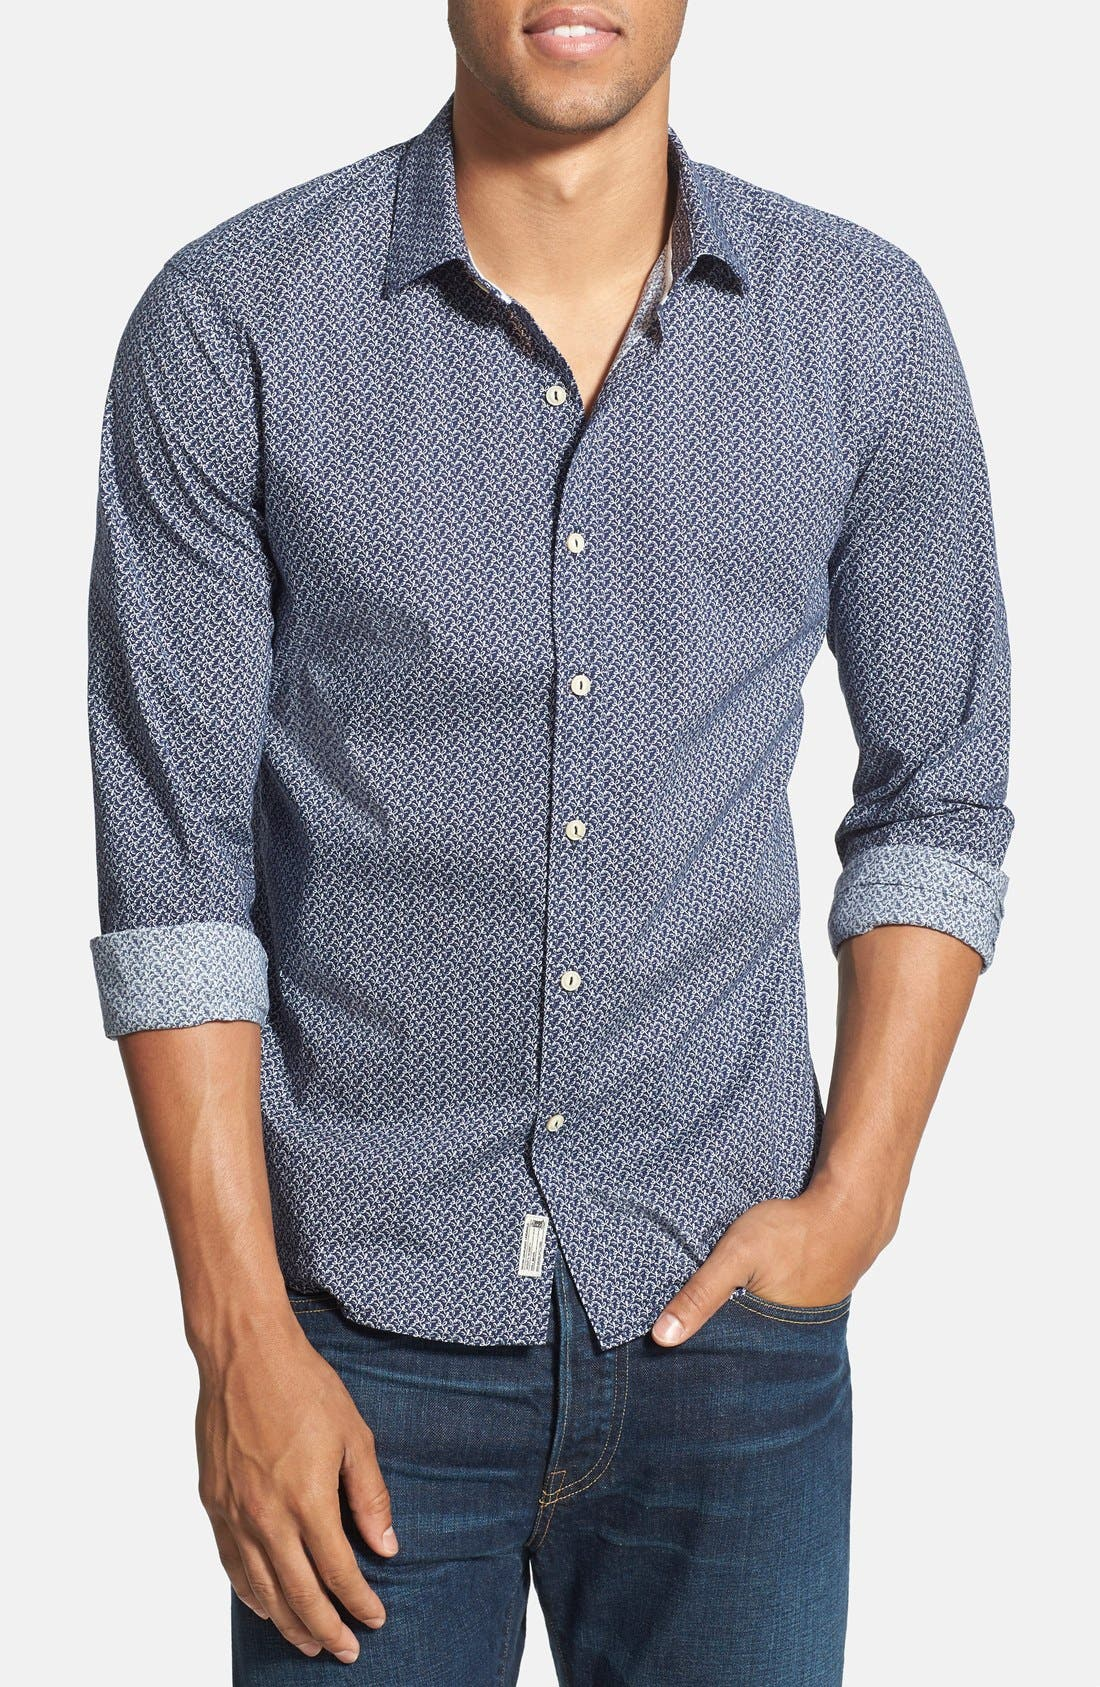 'Blueberry Hill' Trim Fit Print Woven Shirt,                         Main,                         color, Navy